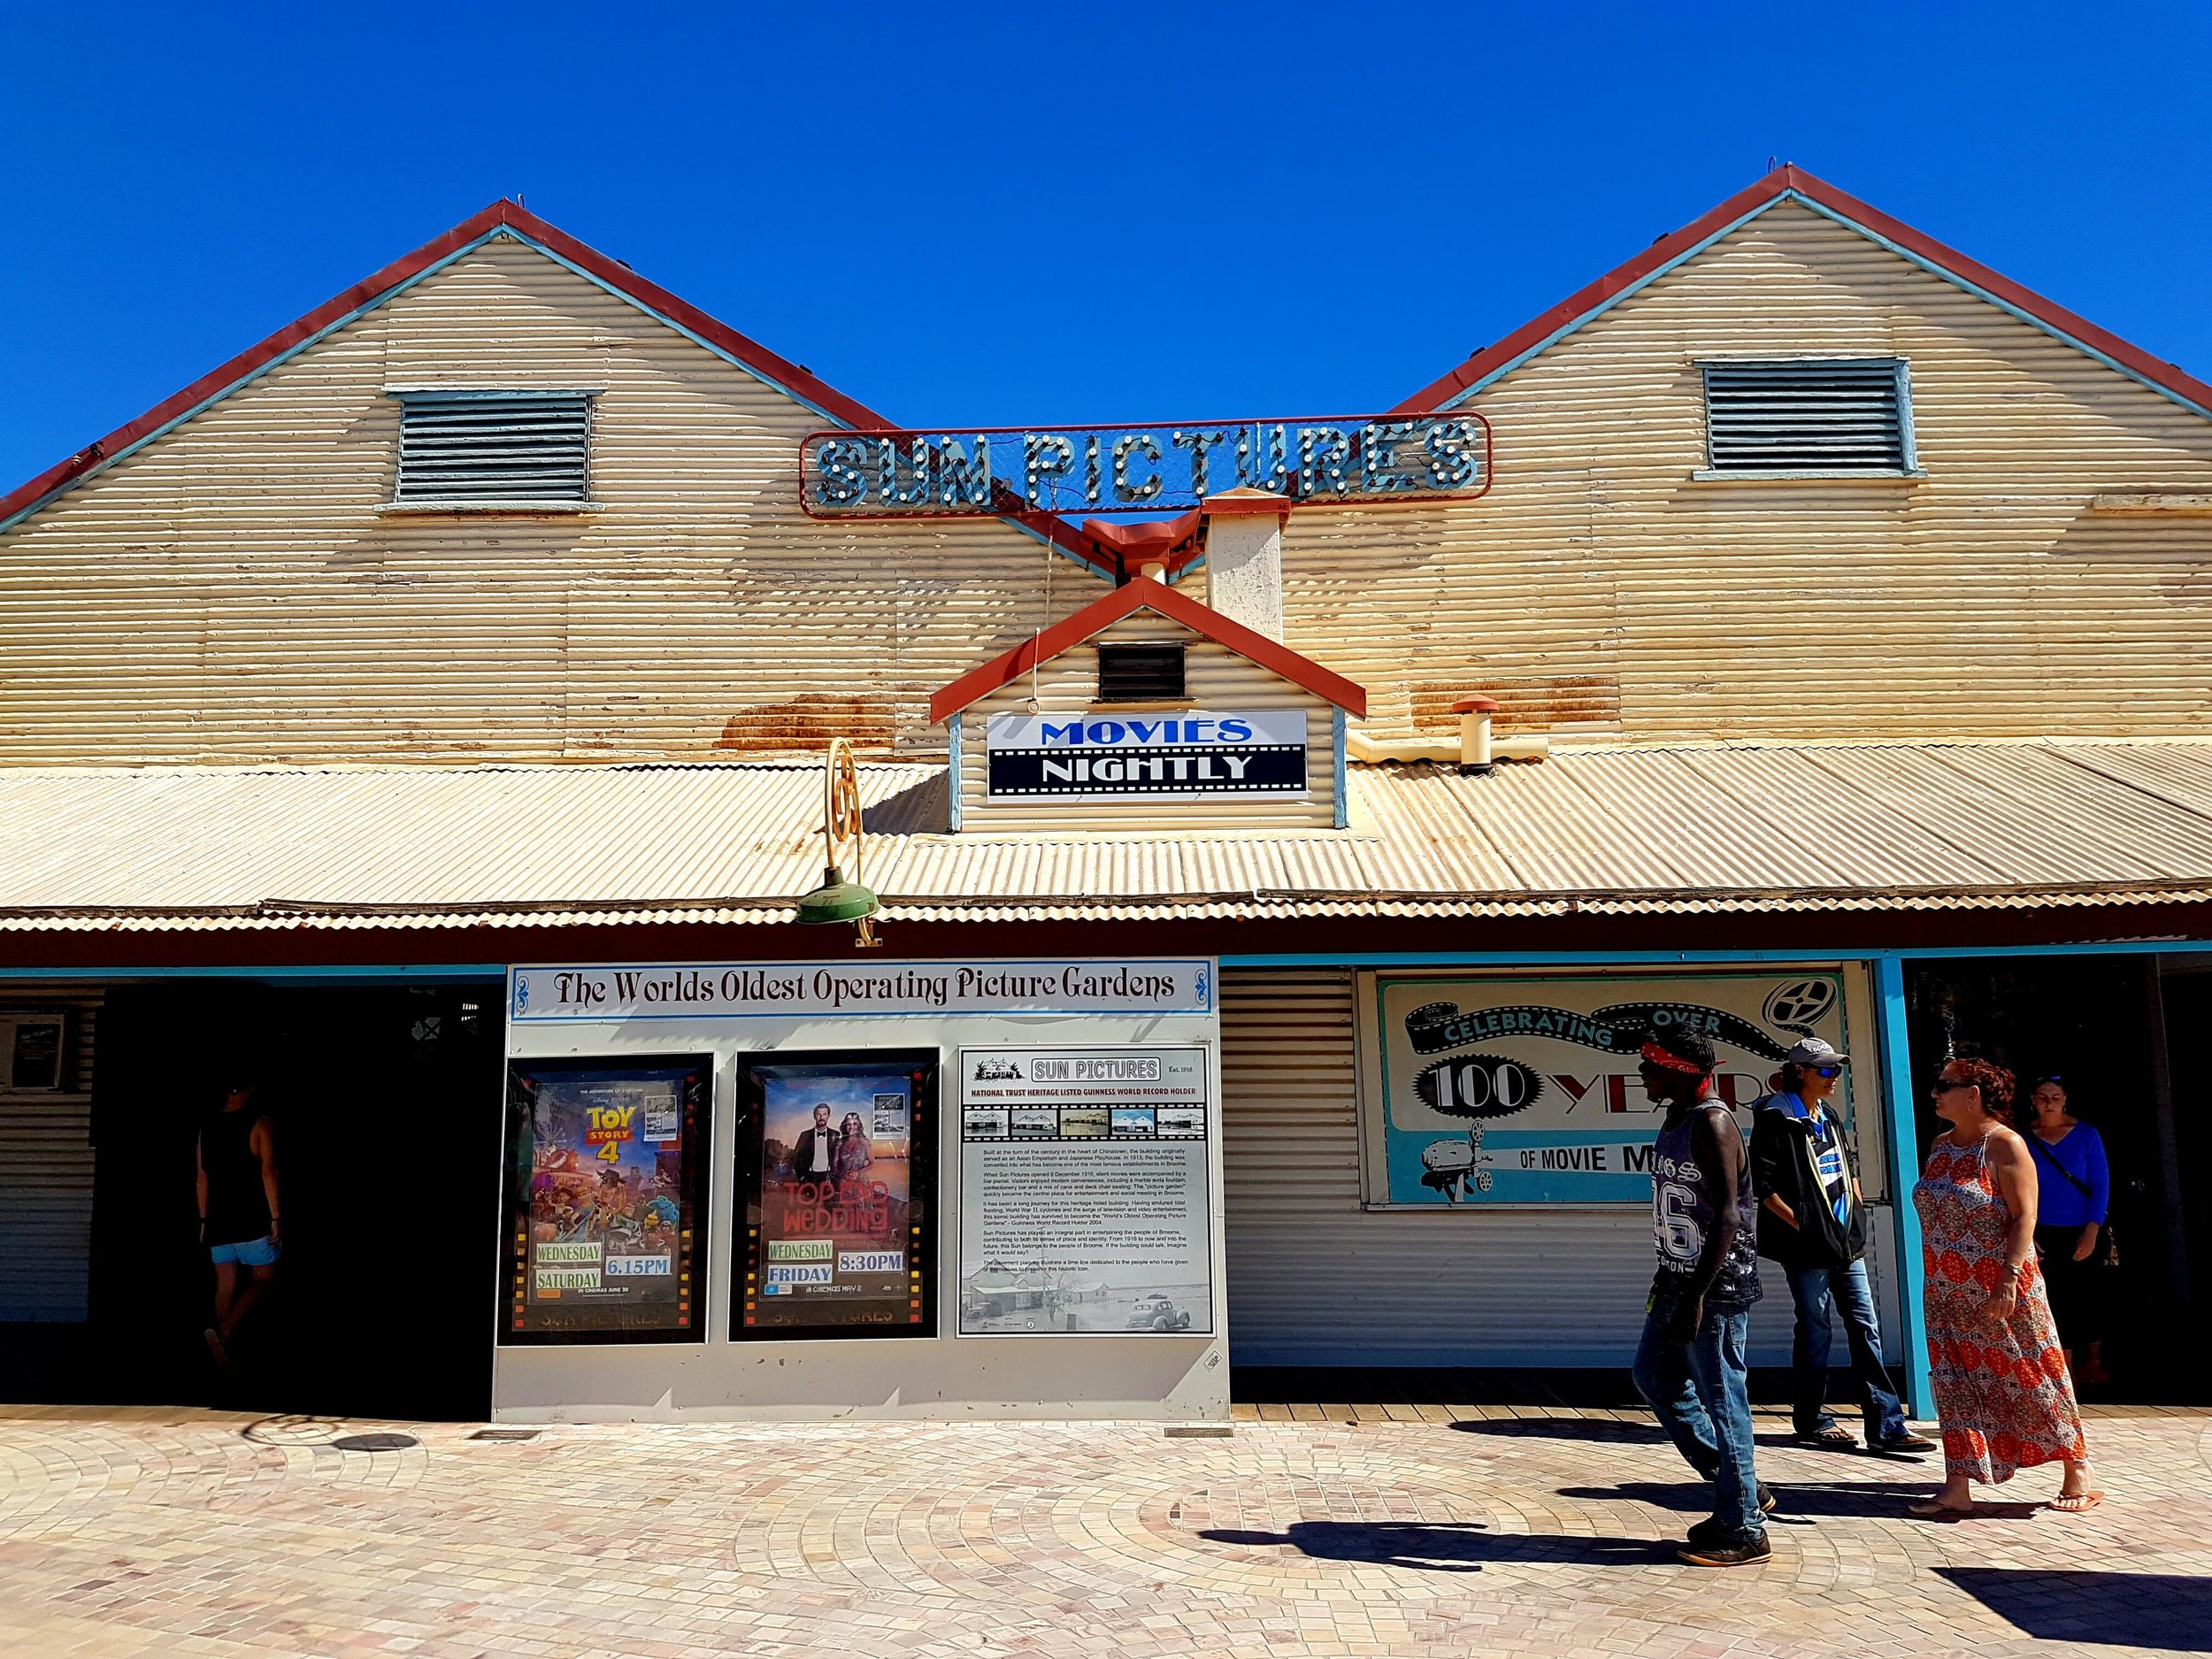 Broome's historic outdoor cinema is popular with tourists